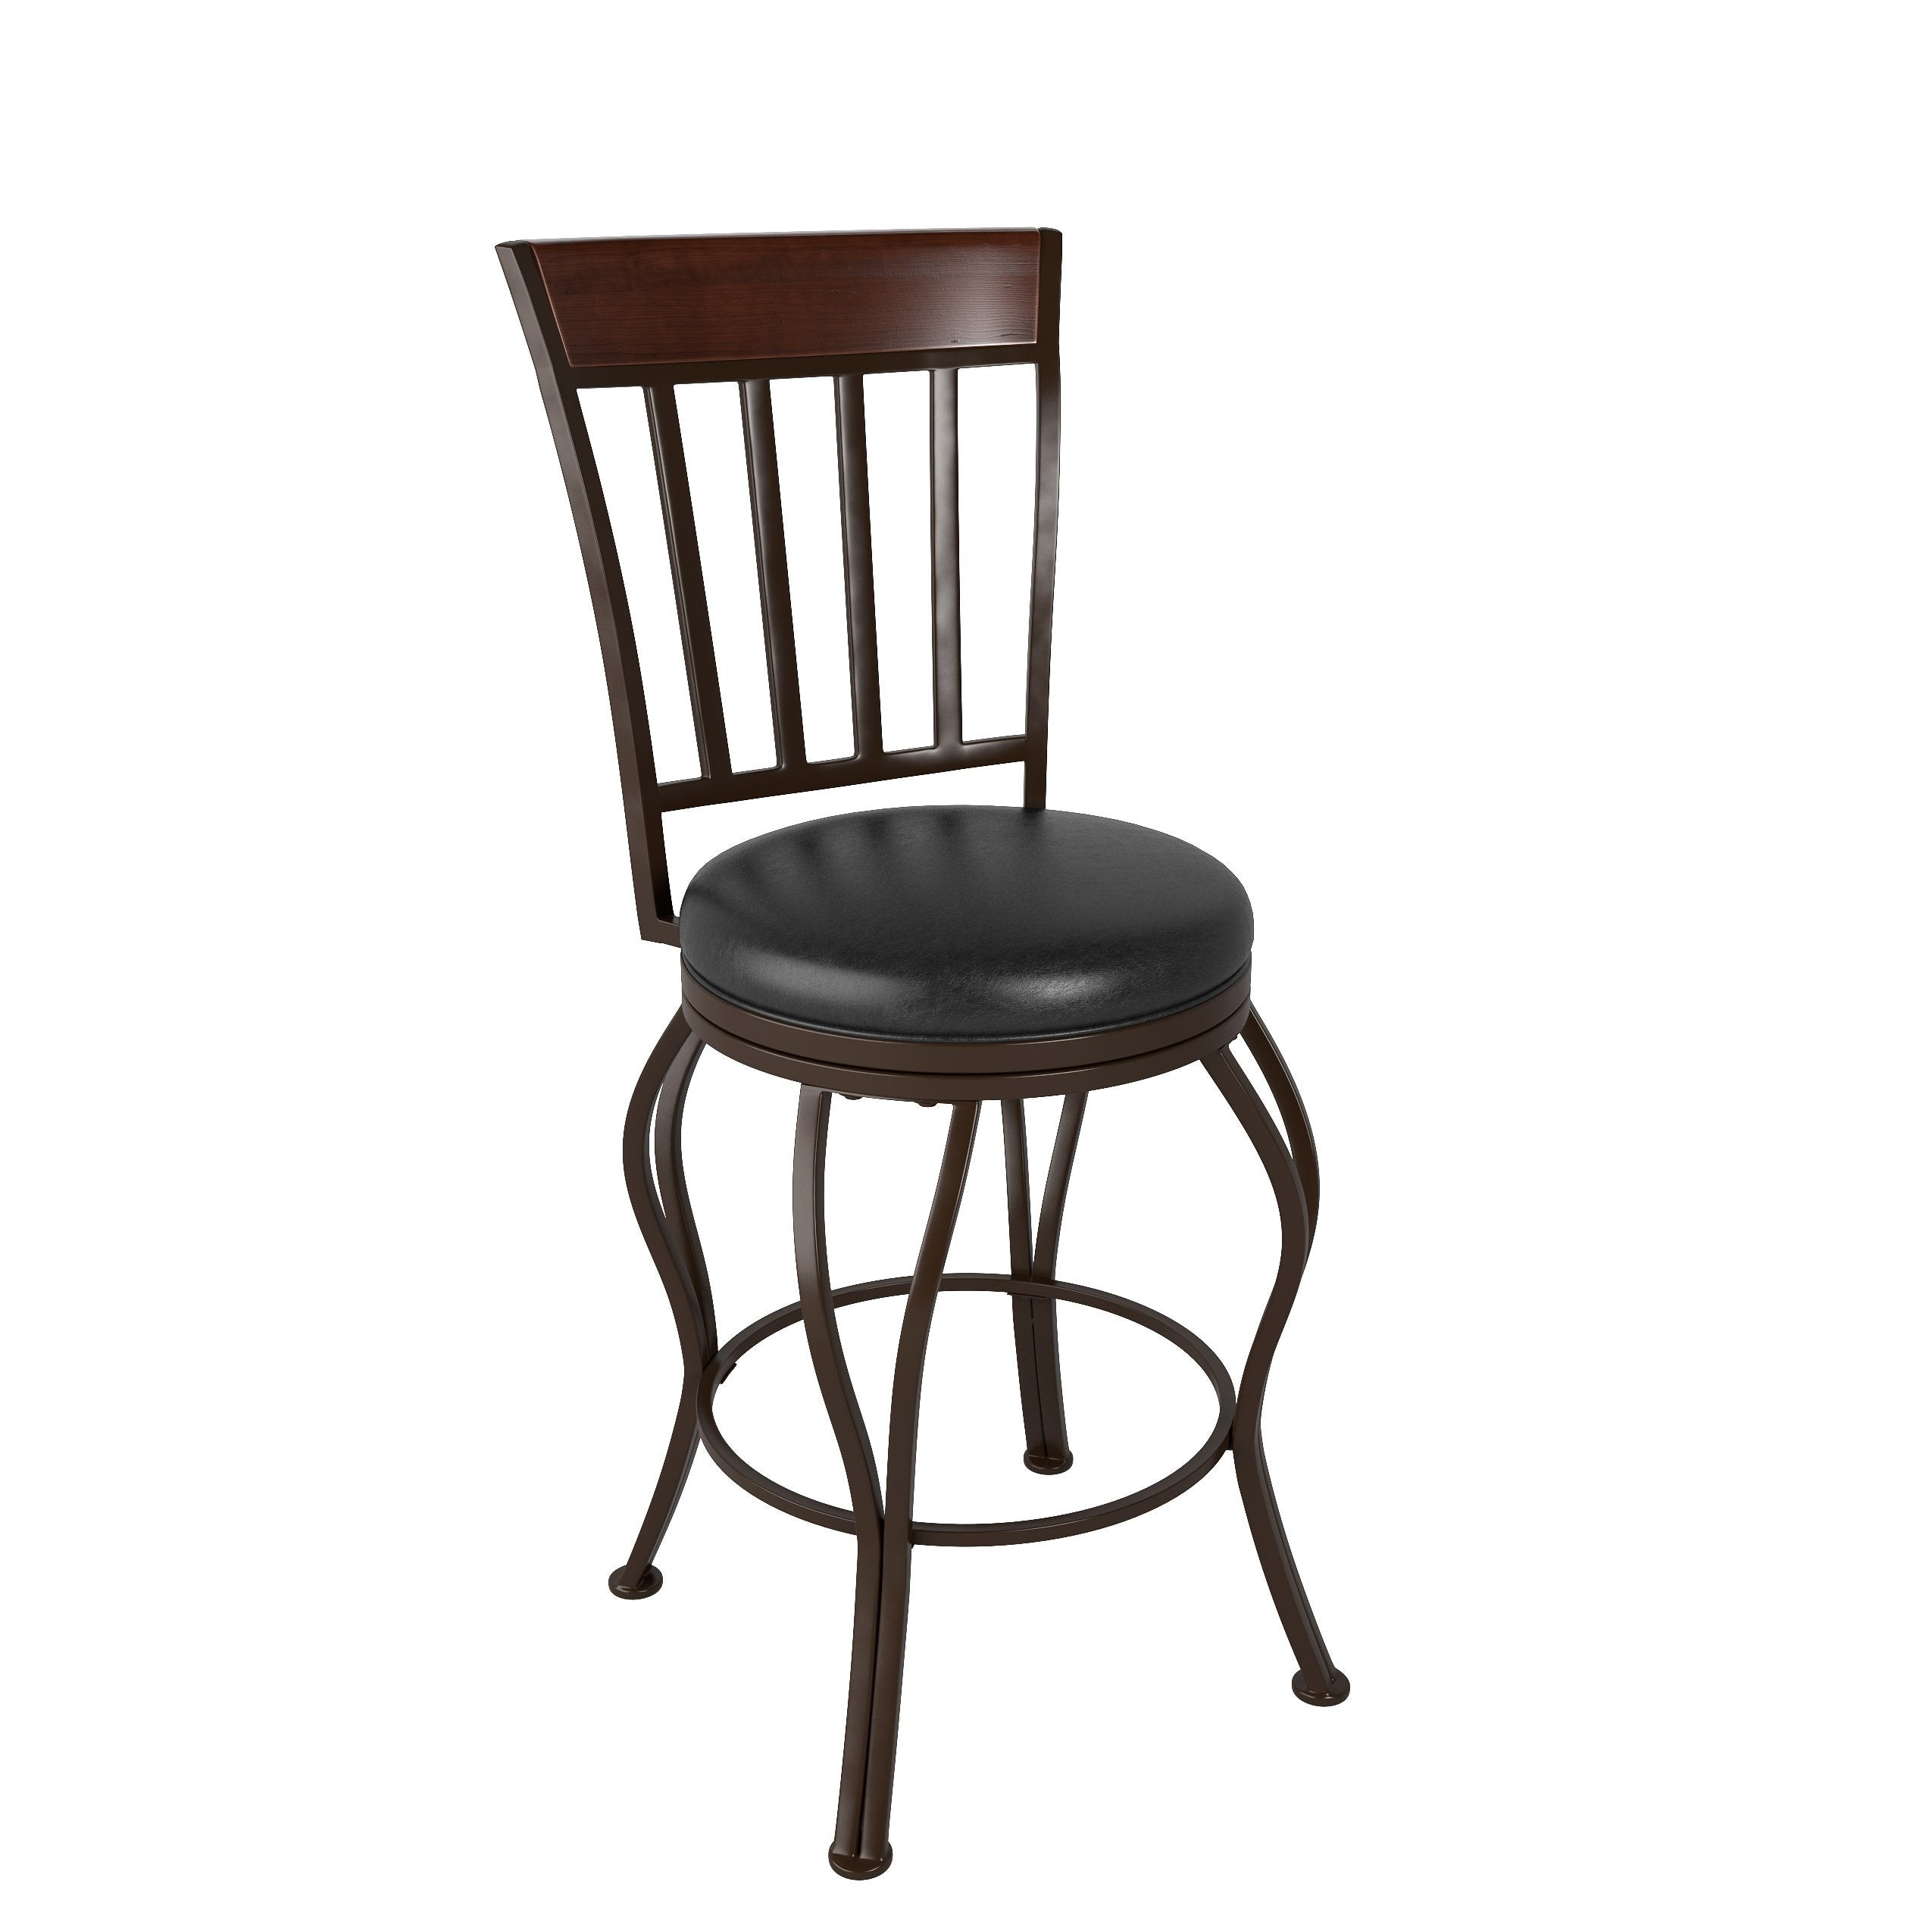 Marvelous Metal Counter Height Barstool With Glossy Dark Brown Bonded Leather Seat Clearance Gamerscity Chair Design For Home Gamerscityorg